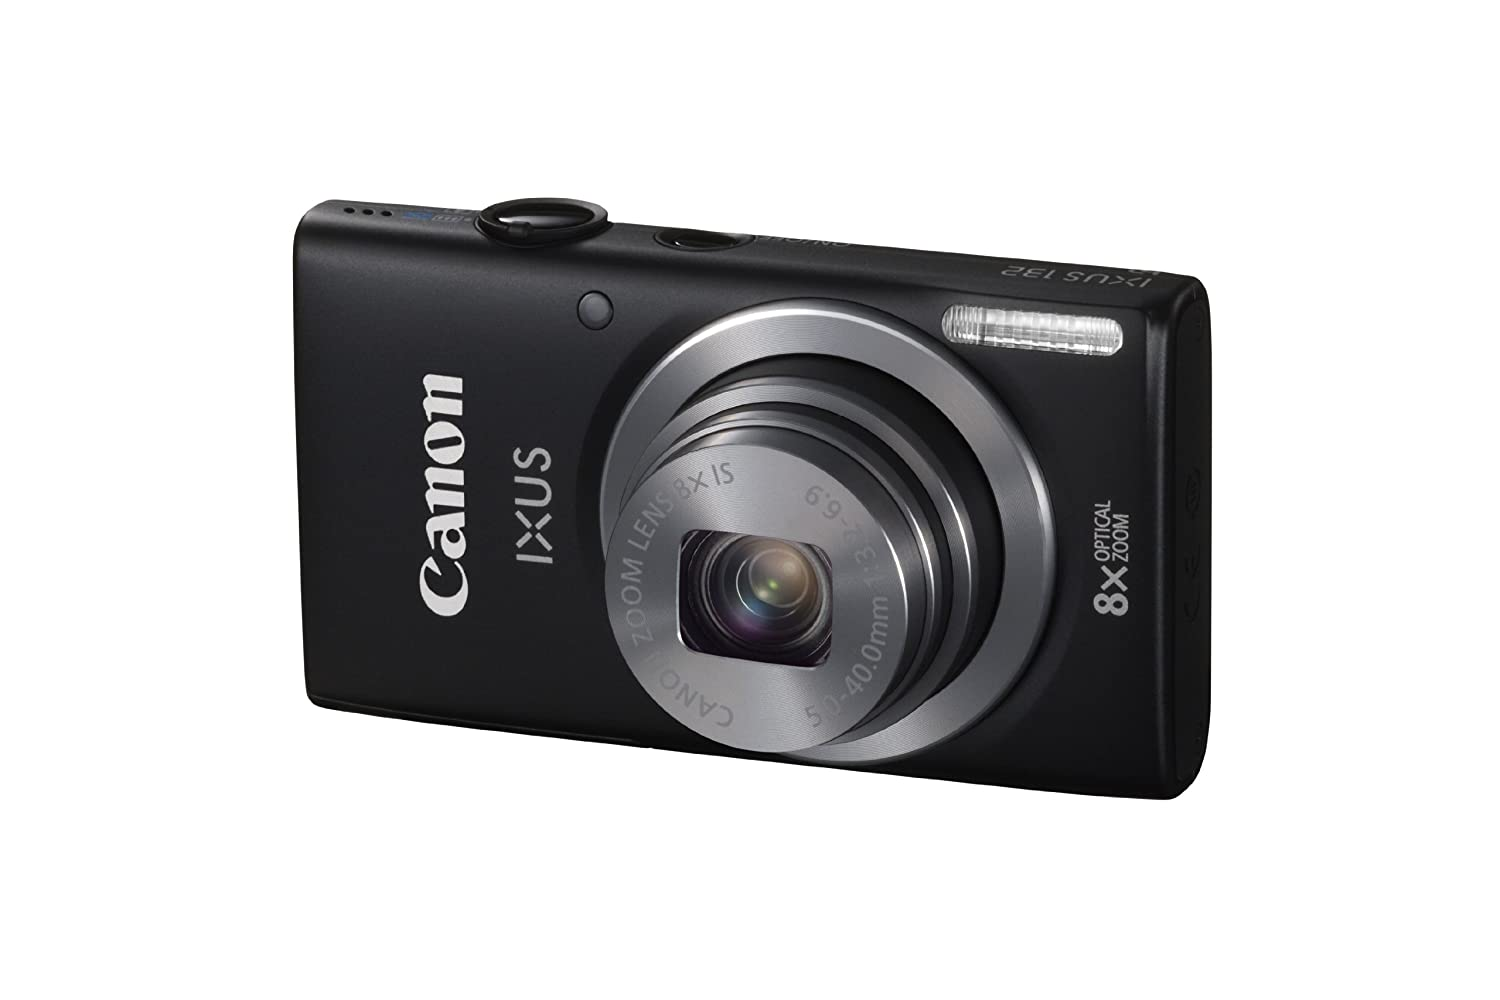 Canon IXUS 132 Digital Camera - Black (16MP, 28mm Wide Angle, Eco Mode, 8x Optical Zoom) 3.2 inch LCD